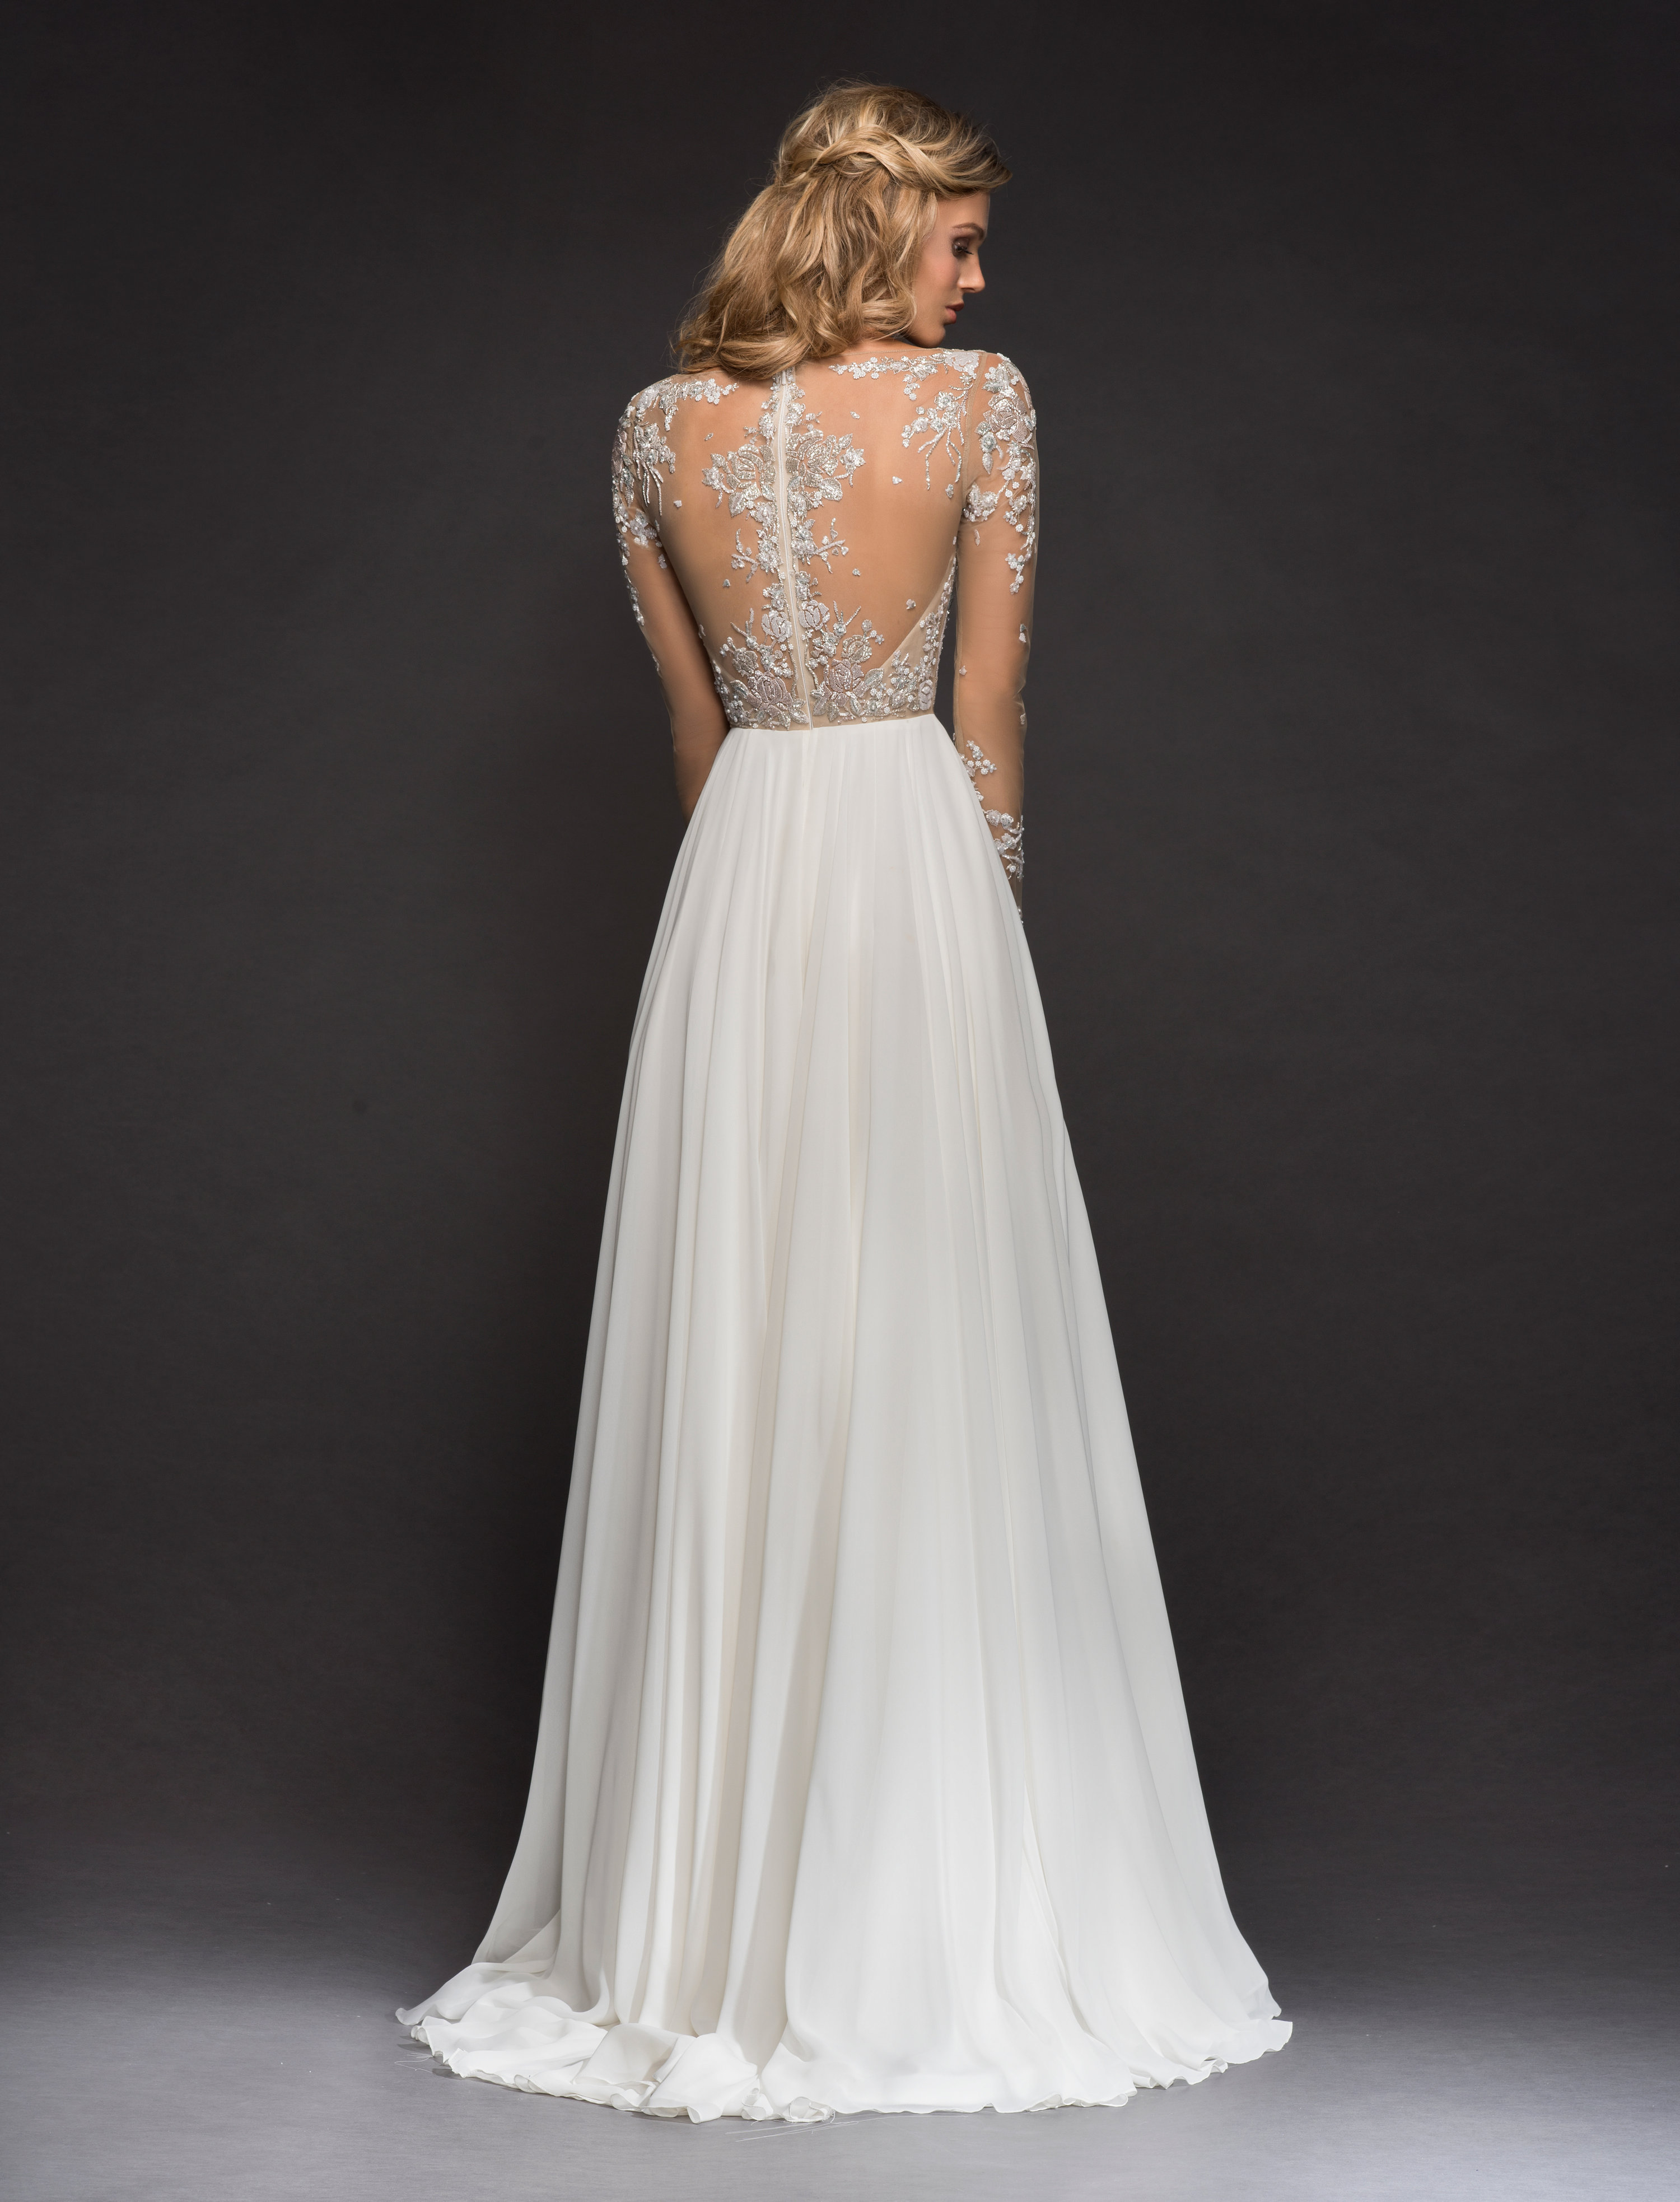 Bridal Gowns and Wedding Dresses by JLM Couture - Style 6807 Pascal